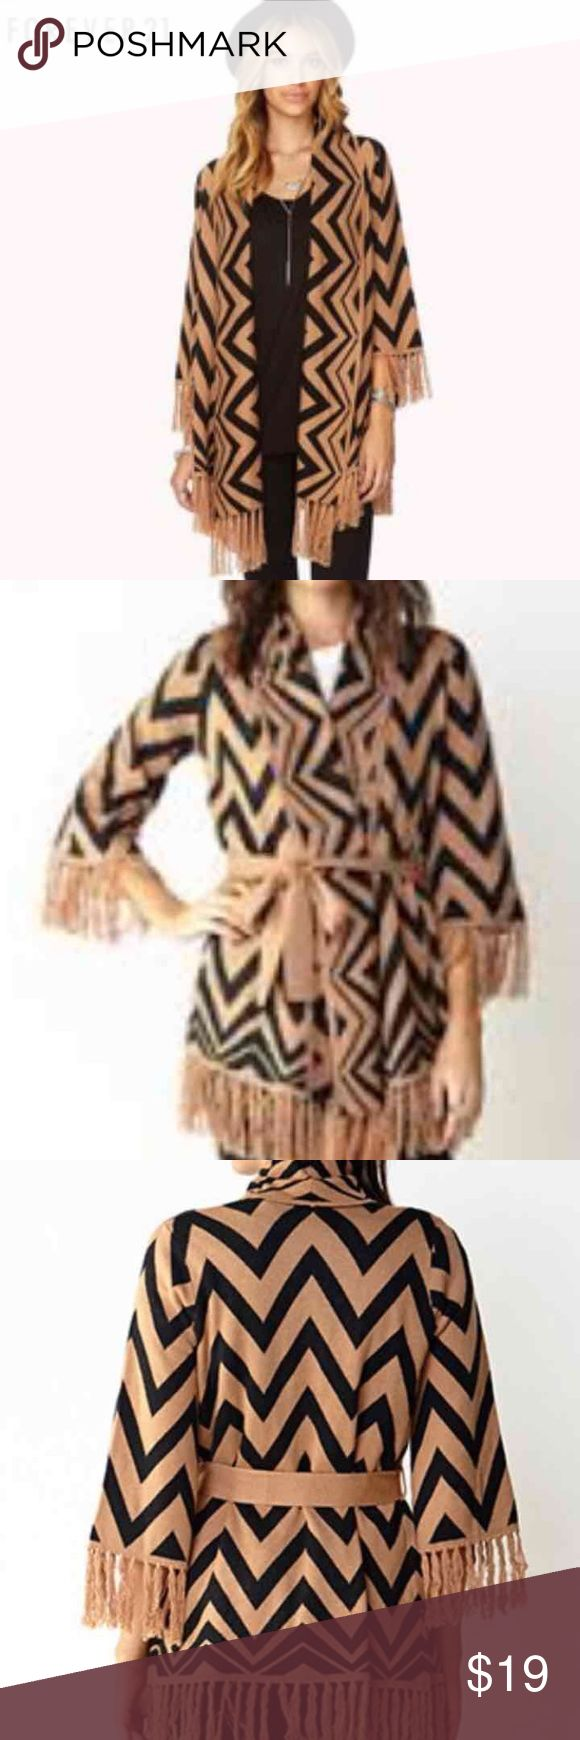 Forever21 Chevron Aztec Print Cardigan Medium In like new condition, only wore once however it was too big on me. Gorgeous zip zag chevron print thick cardigan. Comes with a self tie sash, super soft and comfortable. Price is firm, fast shipping from California. Originally paid $34.90. Size-Medium Could also fit a large, runs a half size bigger due to it being from the contemporary collection. Forever 21 Sweaters Cardigans